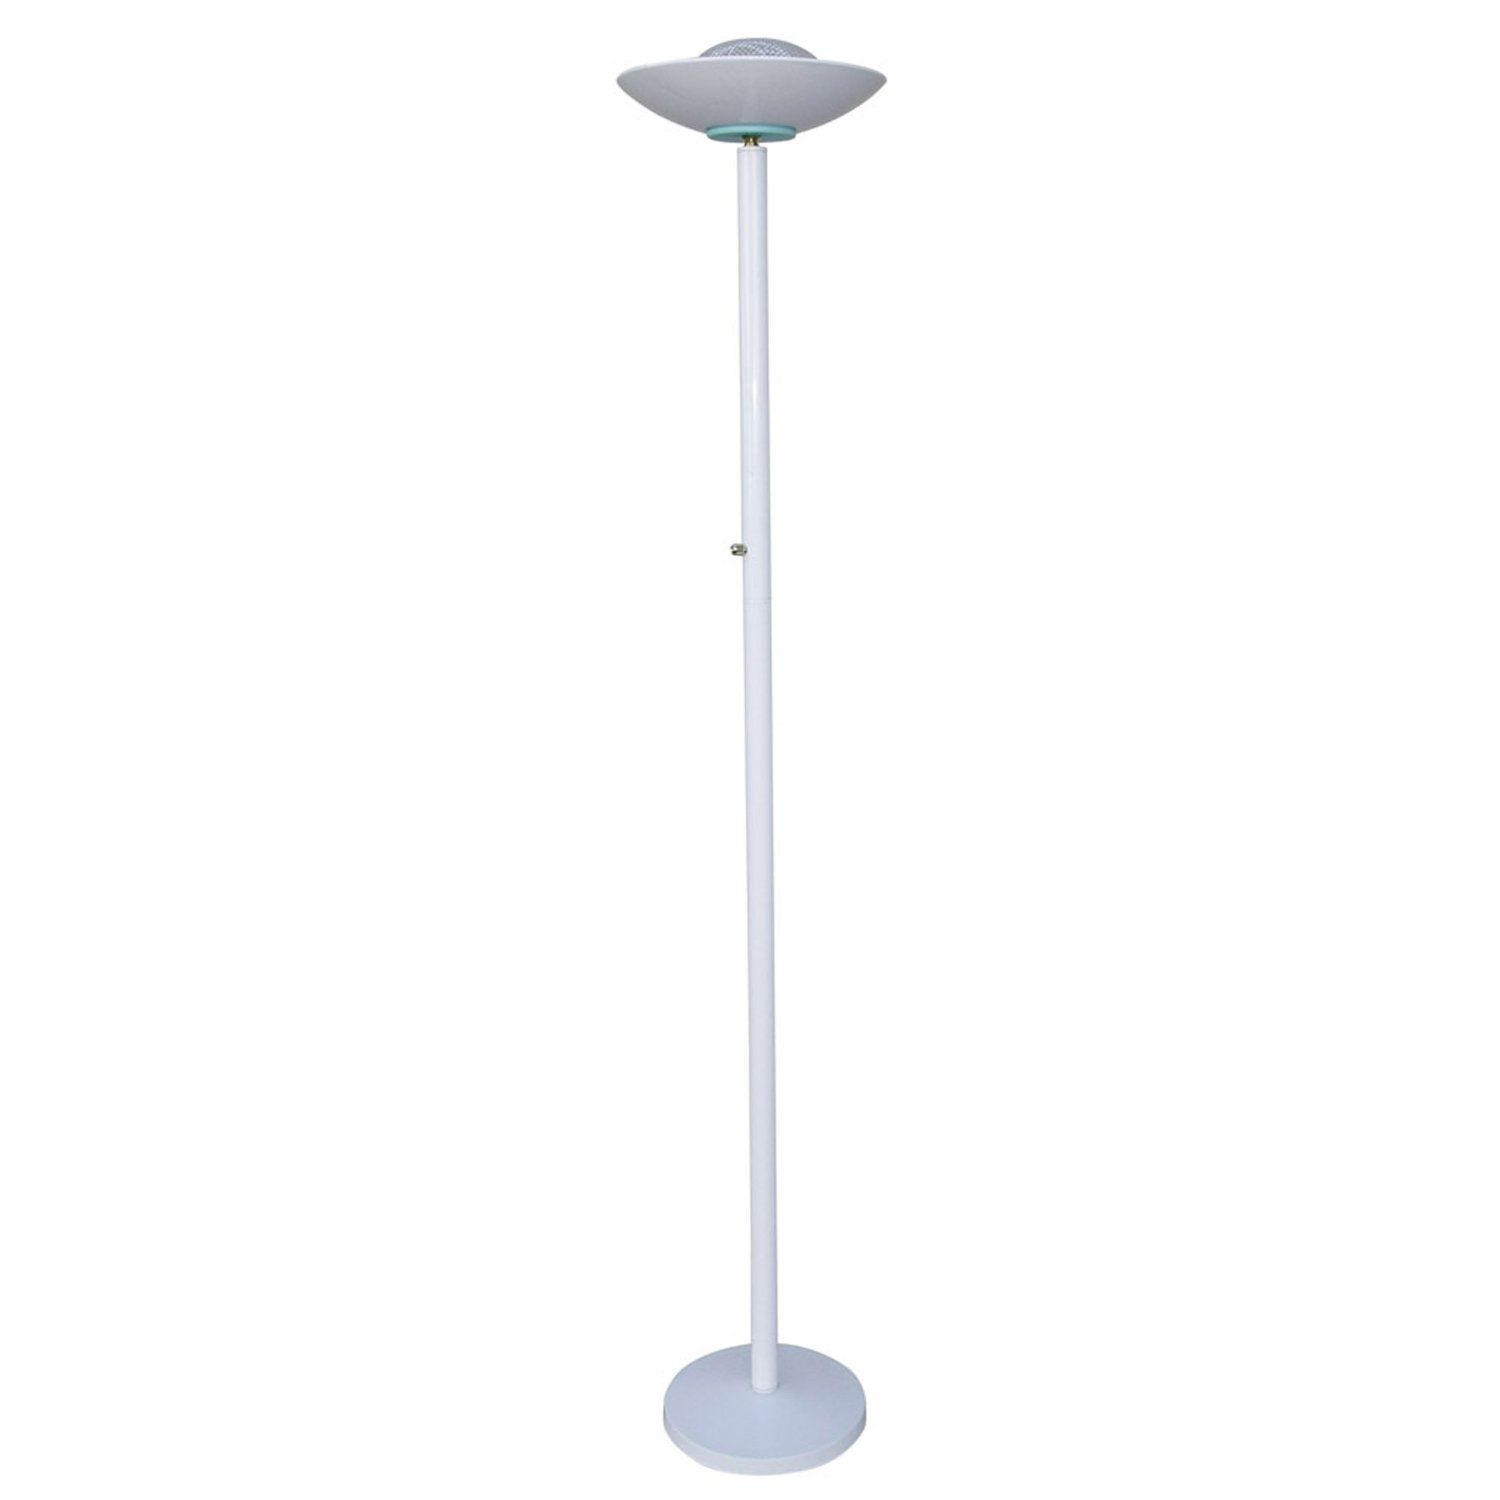 300-watts-halogen-torchiere-floor-lamp-photo-1